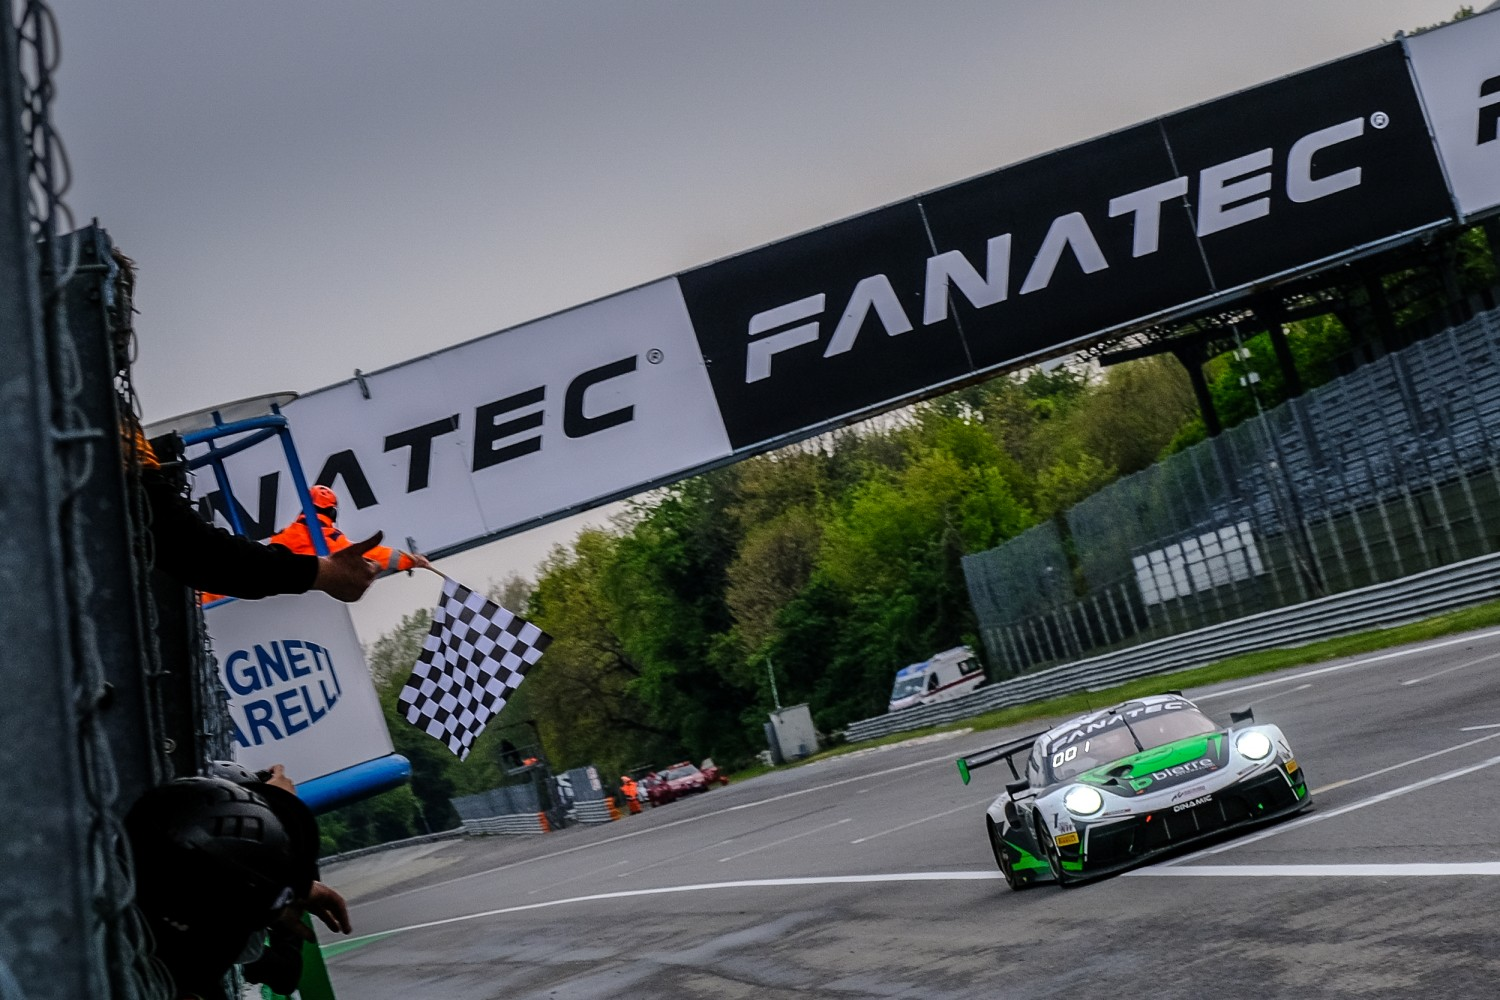 Dinamic Motorsport Porsche secures back-to-back Monza victories in action-packed season opener